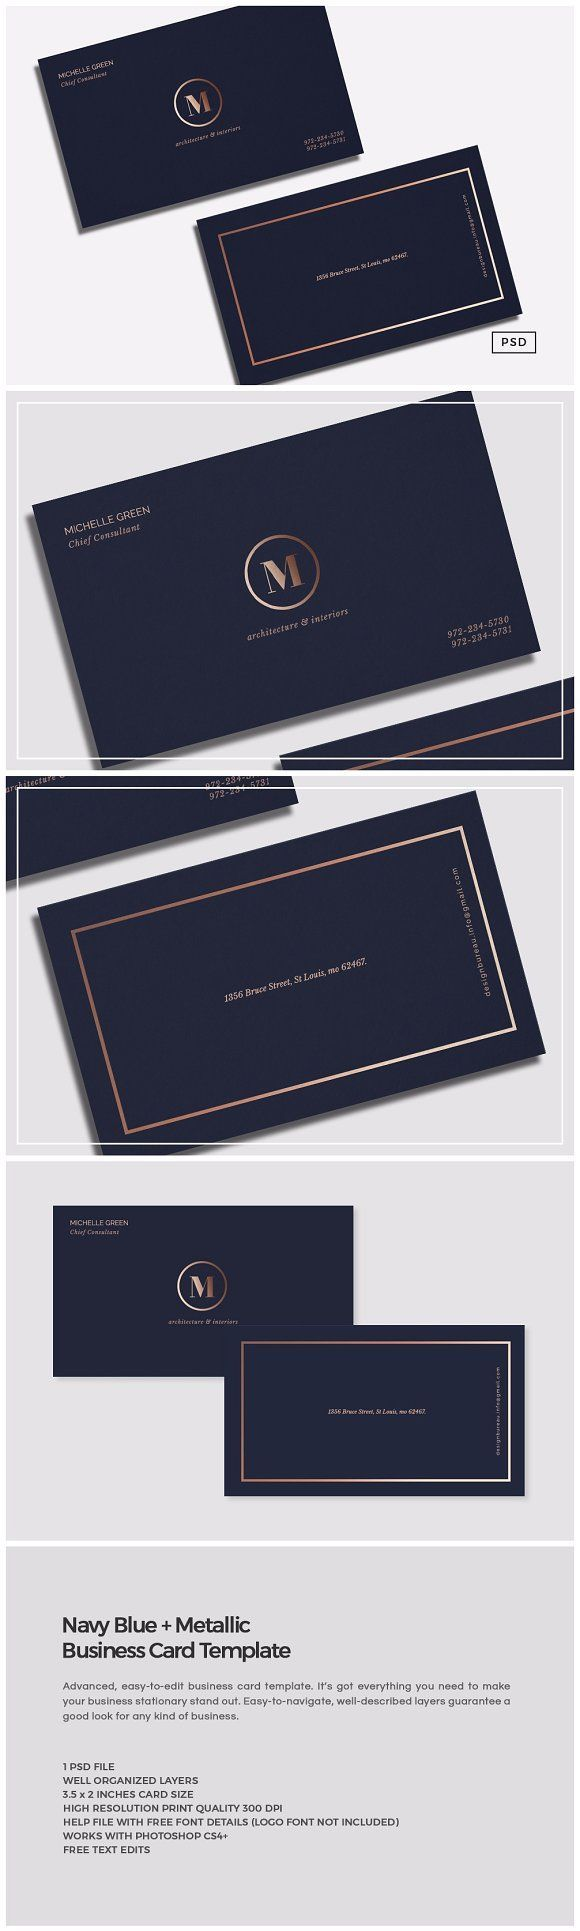 Navy blue metallic business card by the design label on navy blue metallic business card by the design label on creativemarket na internet encontramos um vasto depsito de informaes tutoriais cursos reheart Gallery